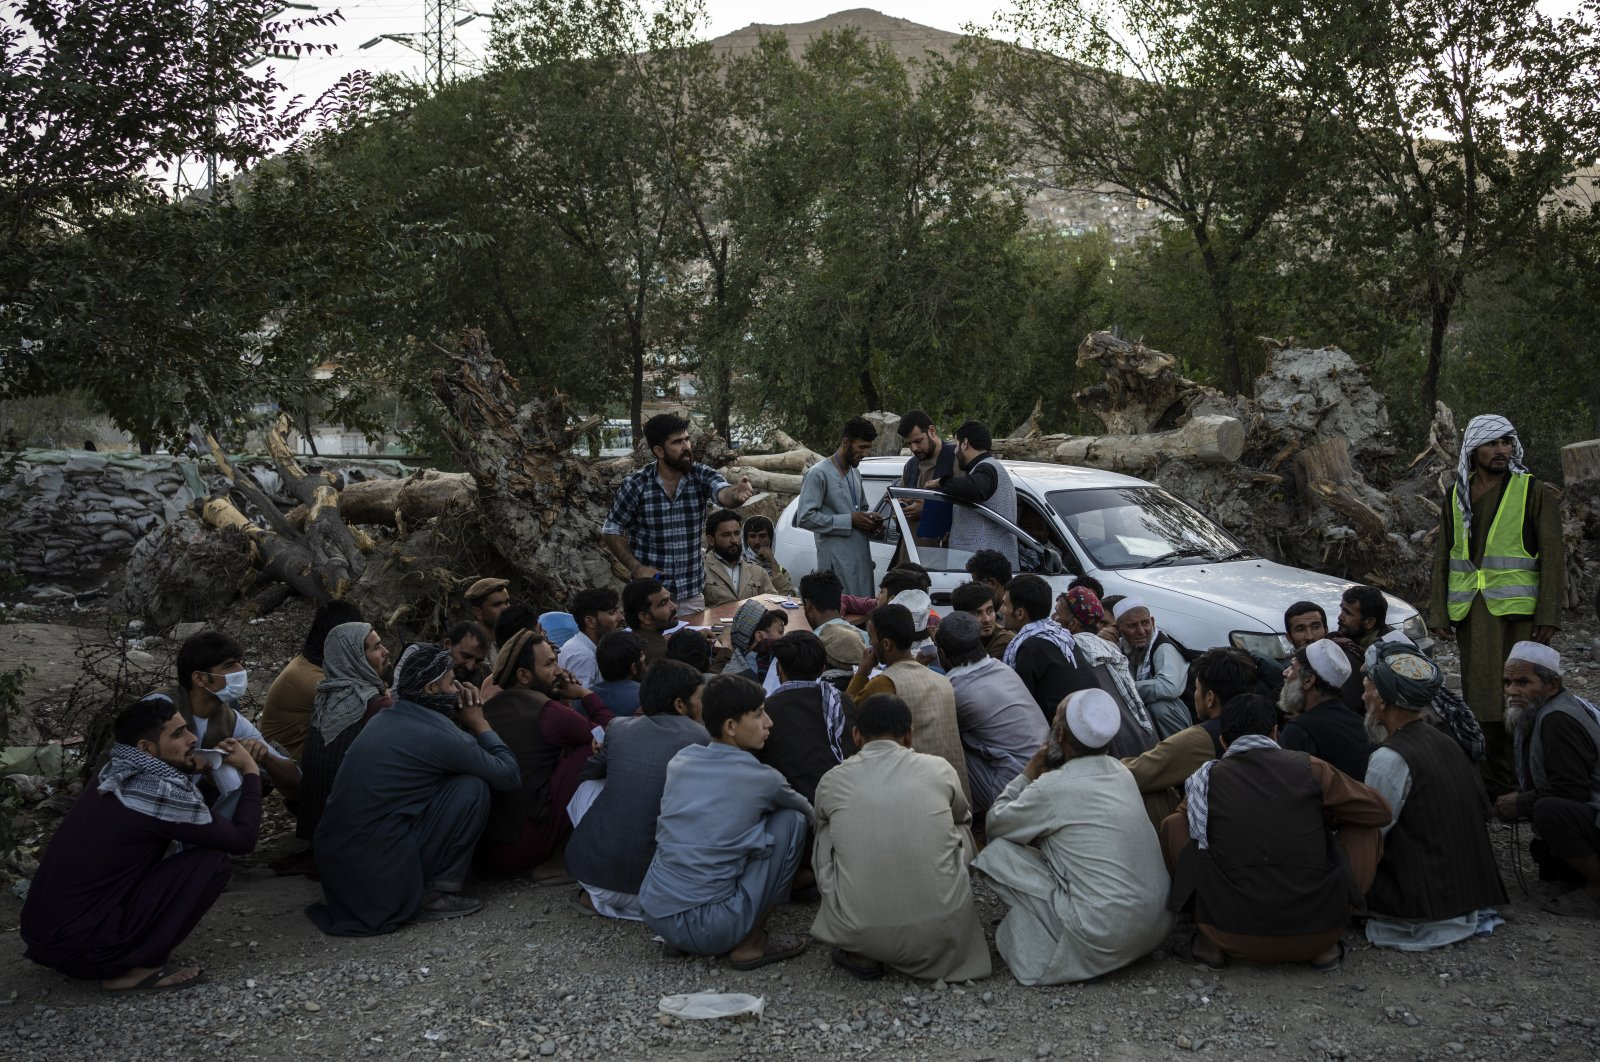 Displaced Afghans wait for food donations at a camp for internally displaced persons in Kabul, Afghanistan, Sept. 13, 2021. (AP Photo)